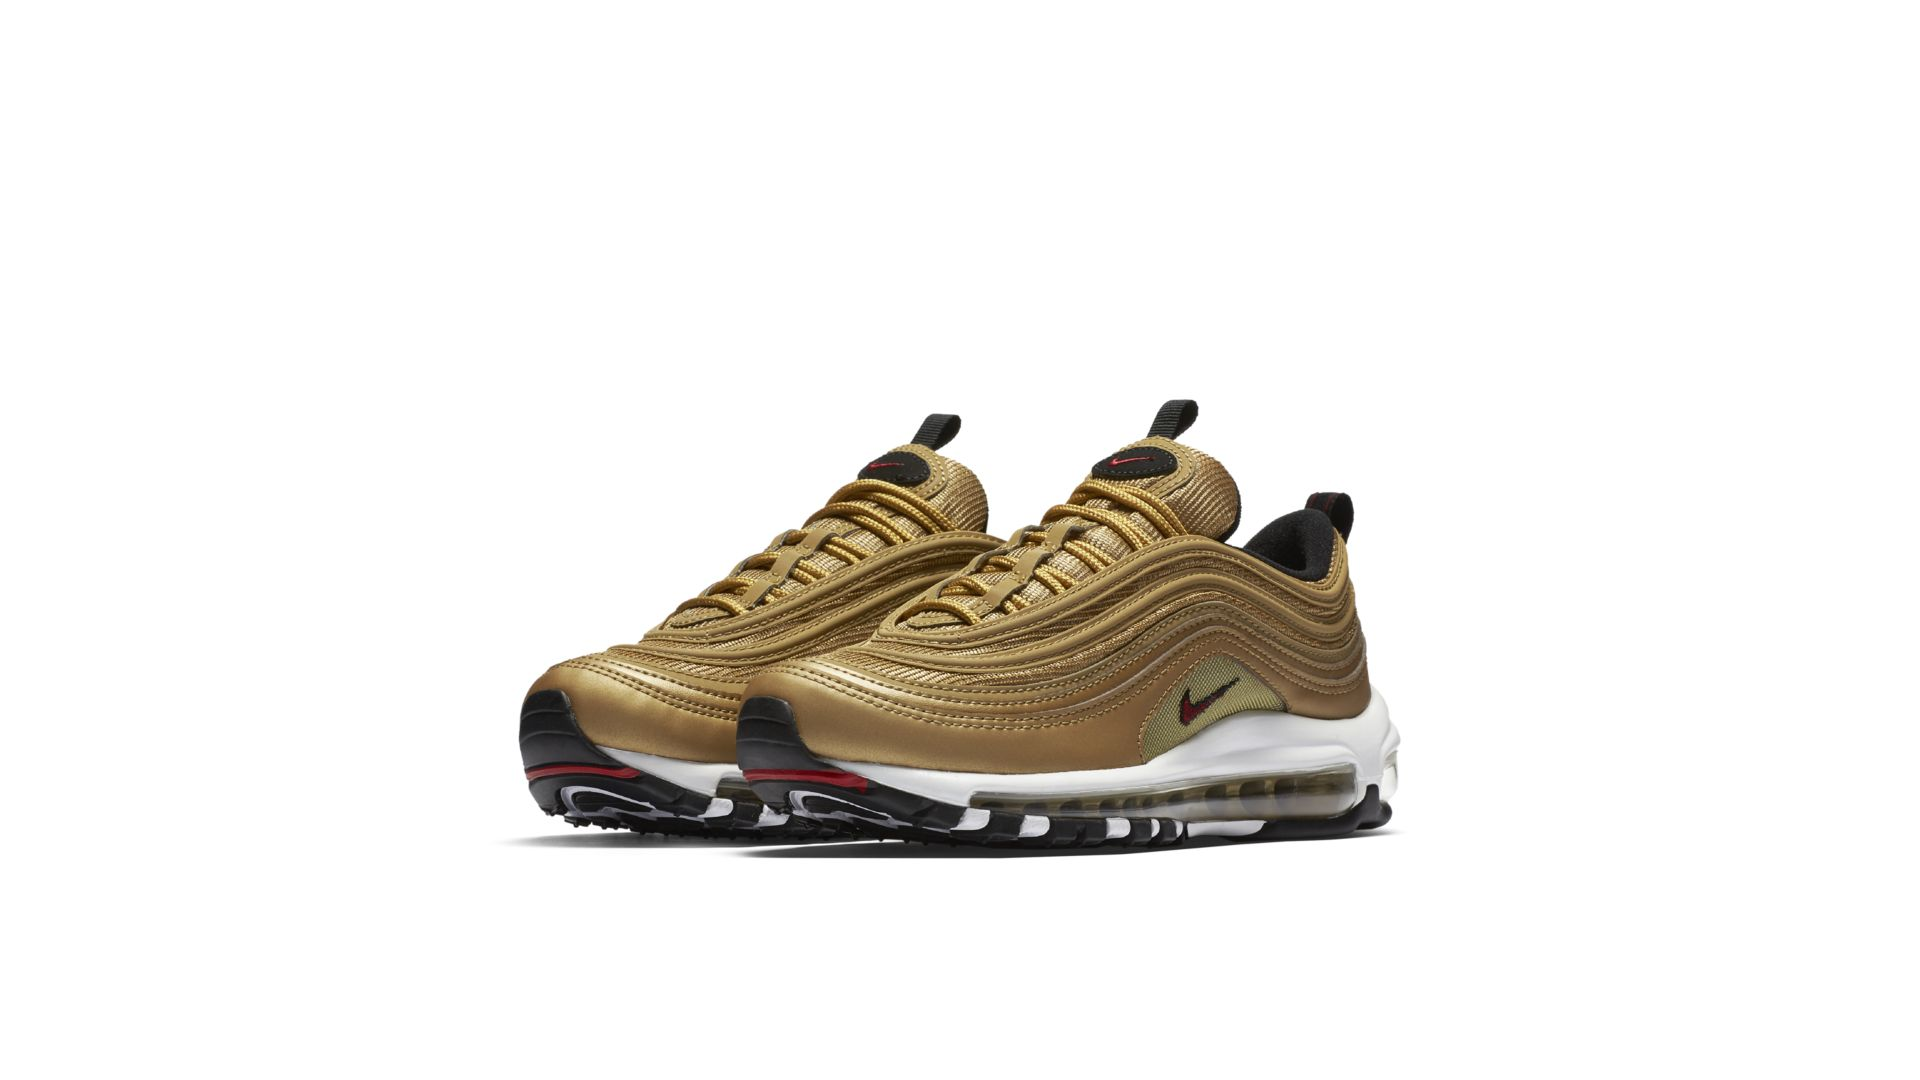 Air Max 97 Metallic Gold W 20172018